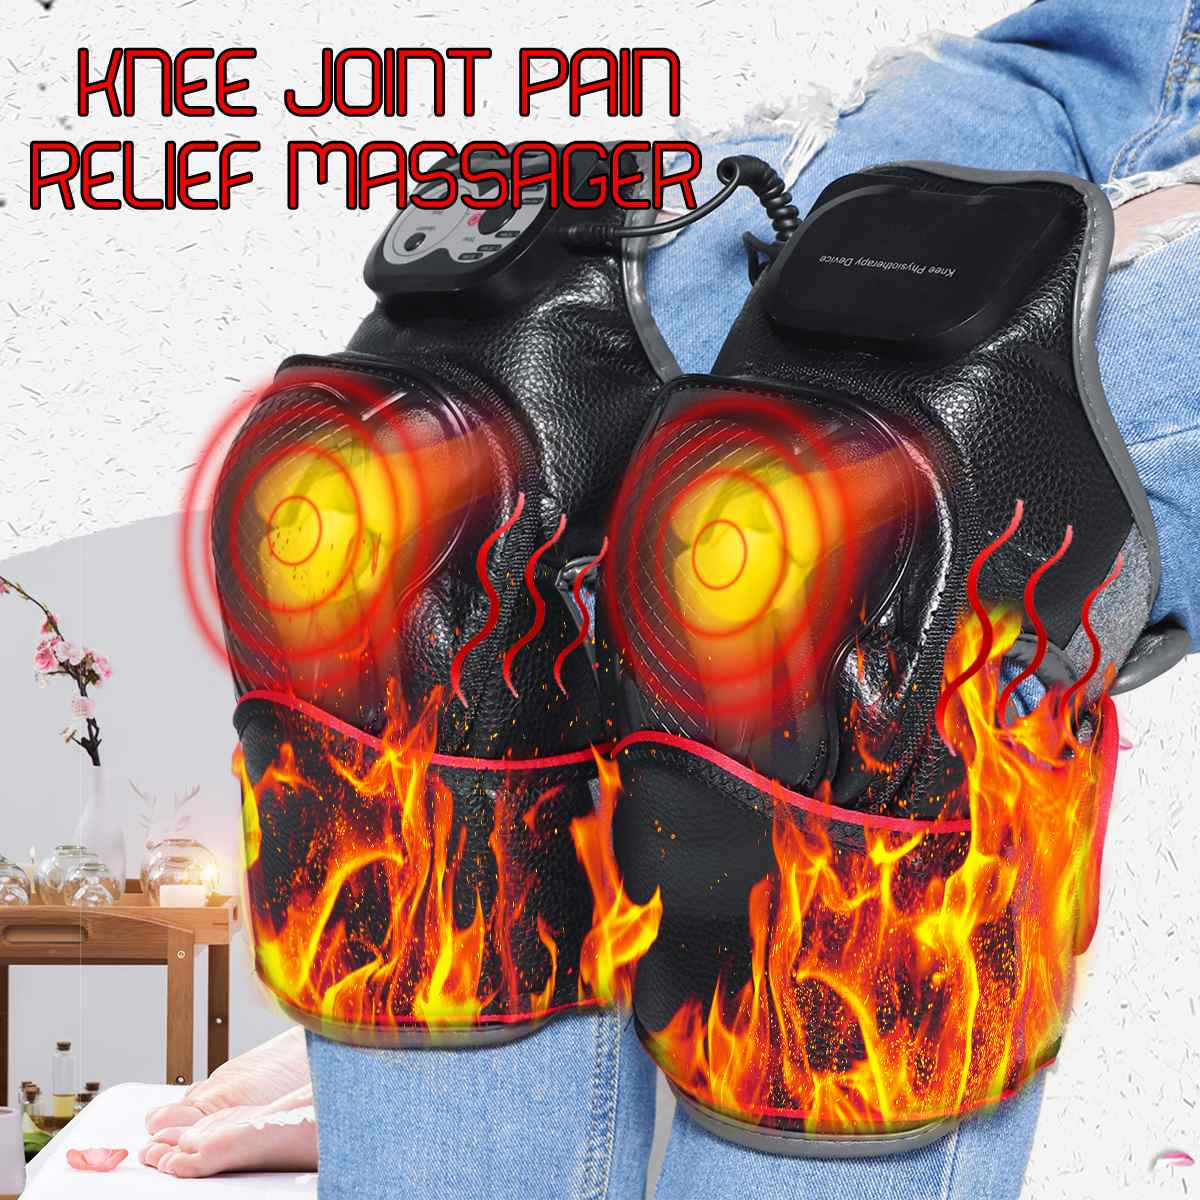 Infrared Heated Adult Knee Massager Rehabilitation Magnetic Vibration Heating Joint Physiotherapy Electric Massage Pain ReliefInfrared Heated Adult Knee Massager Rehabilitation Magnetic Vibration Heating Joint Physiotherapy Electric Massage Pain Relief